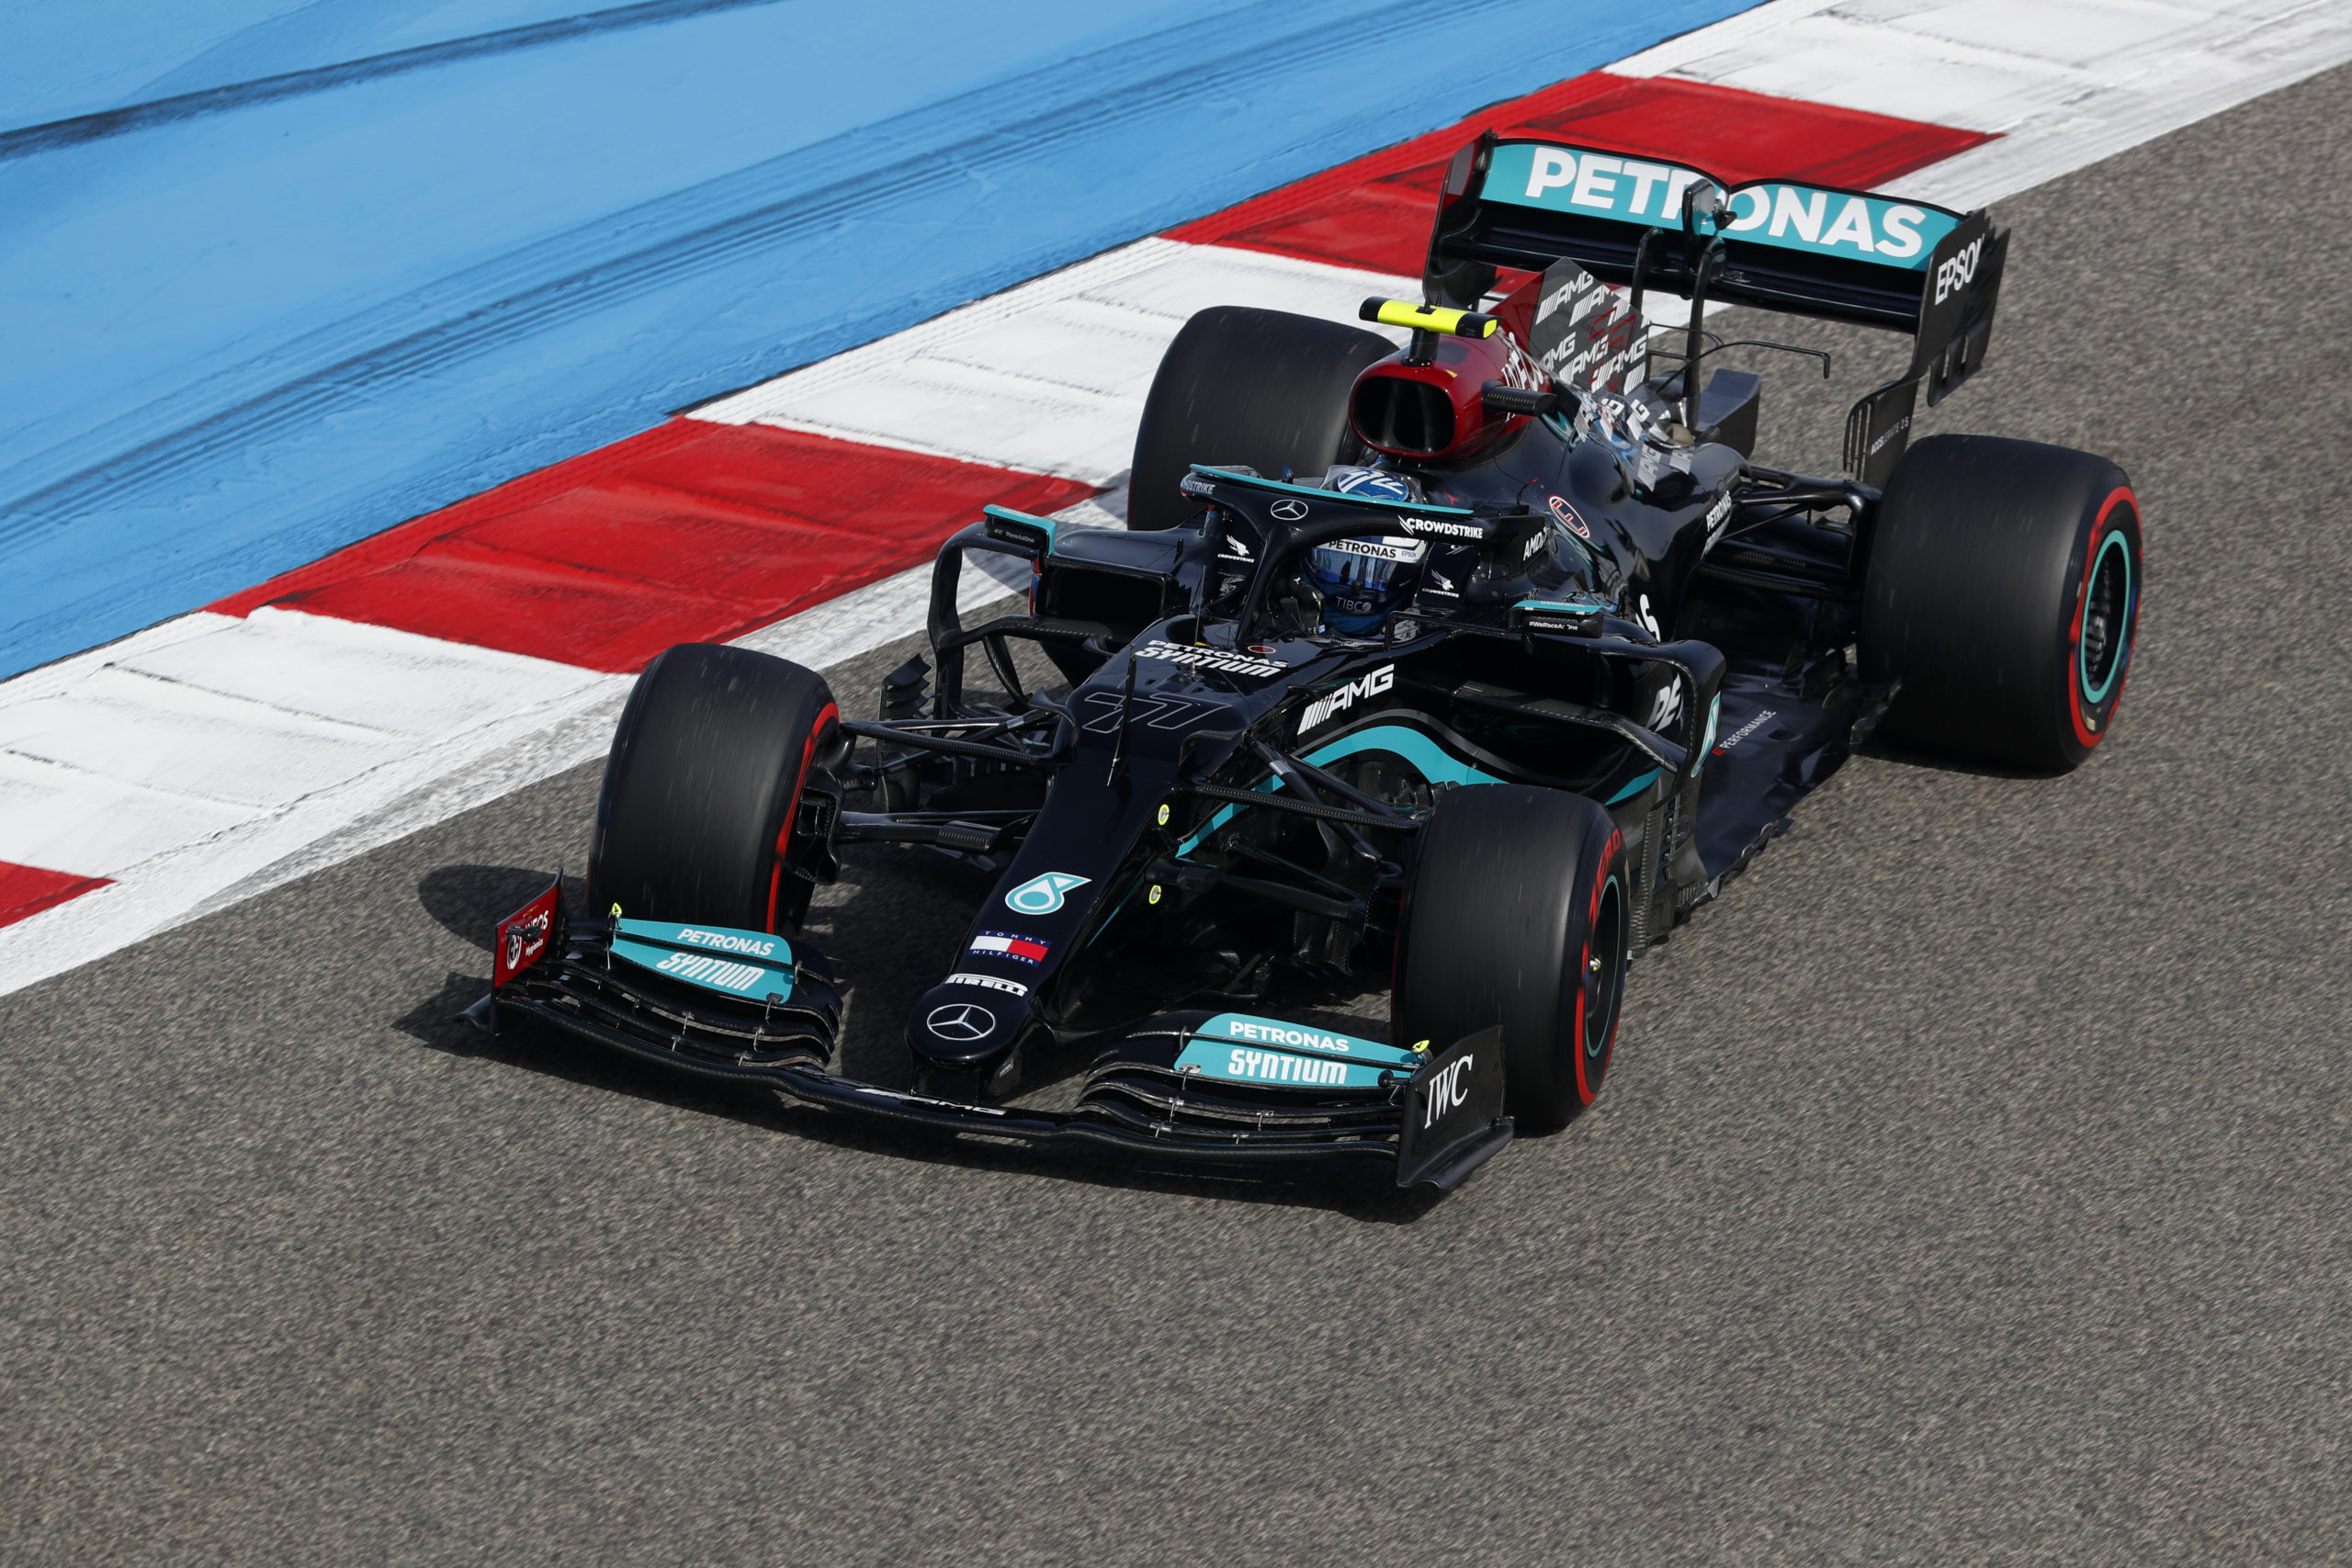 Valtteri Bottas, Mercedes, 2021 Bahrain Grand Prix, Friday - LAT Images